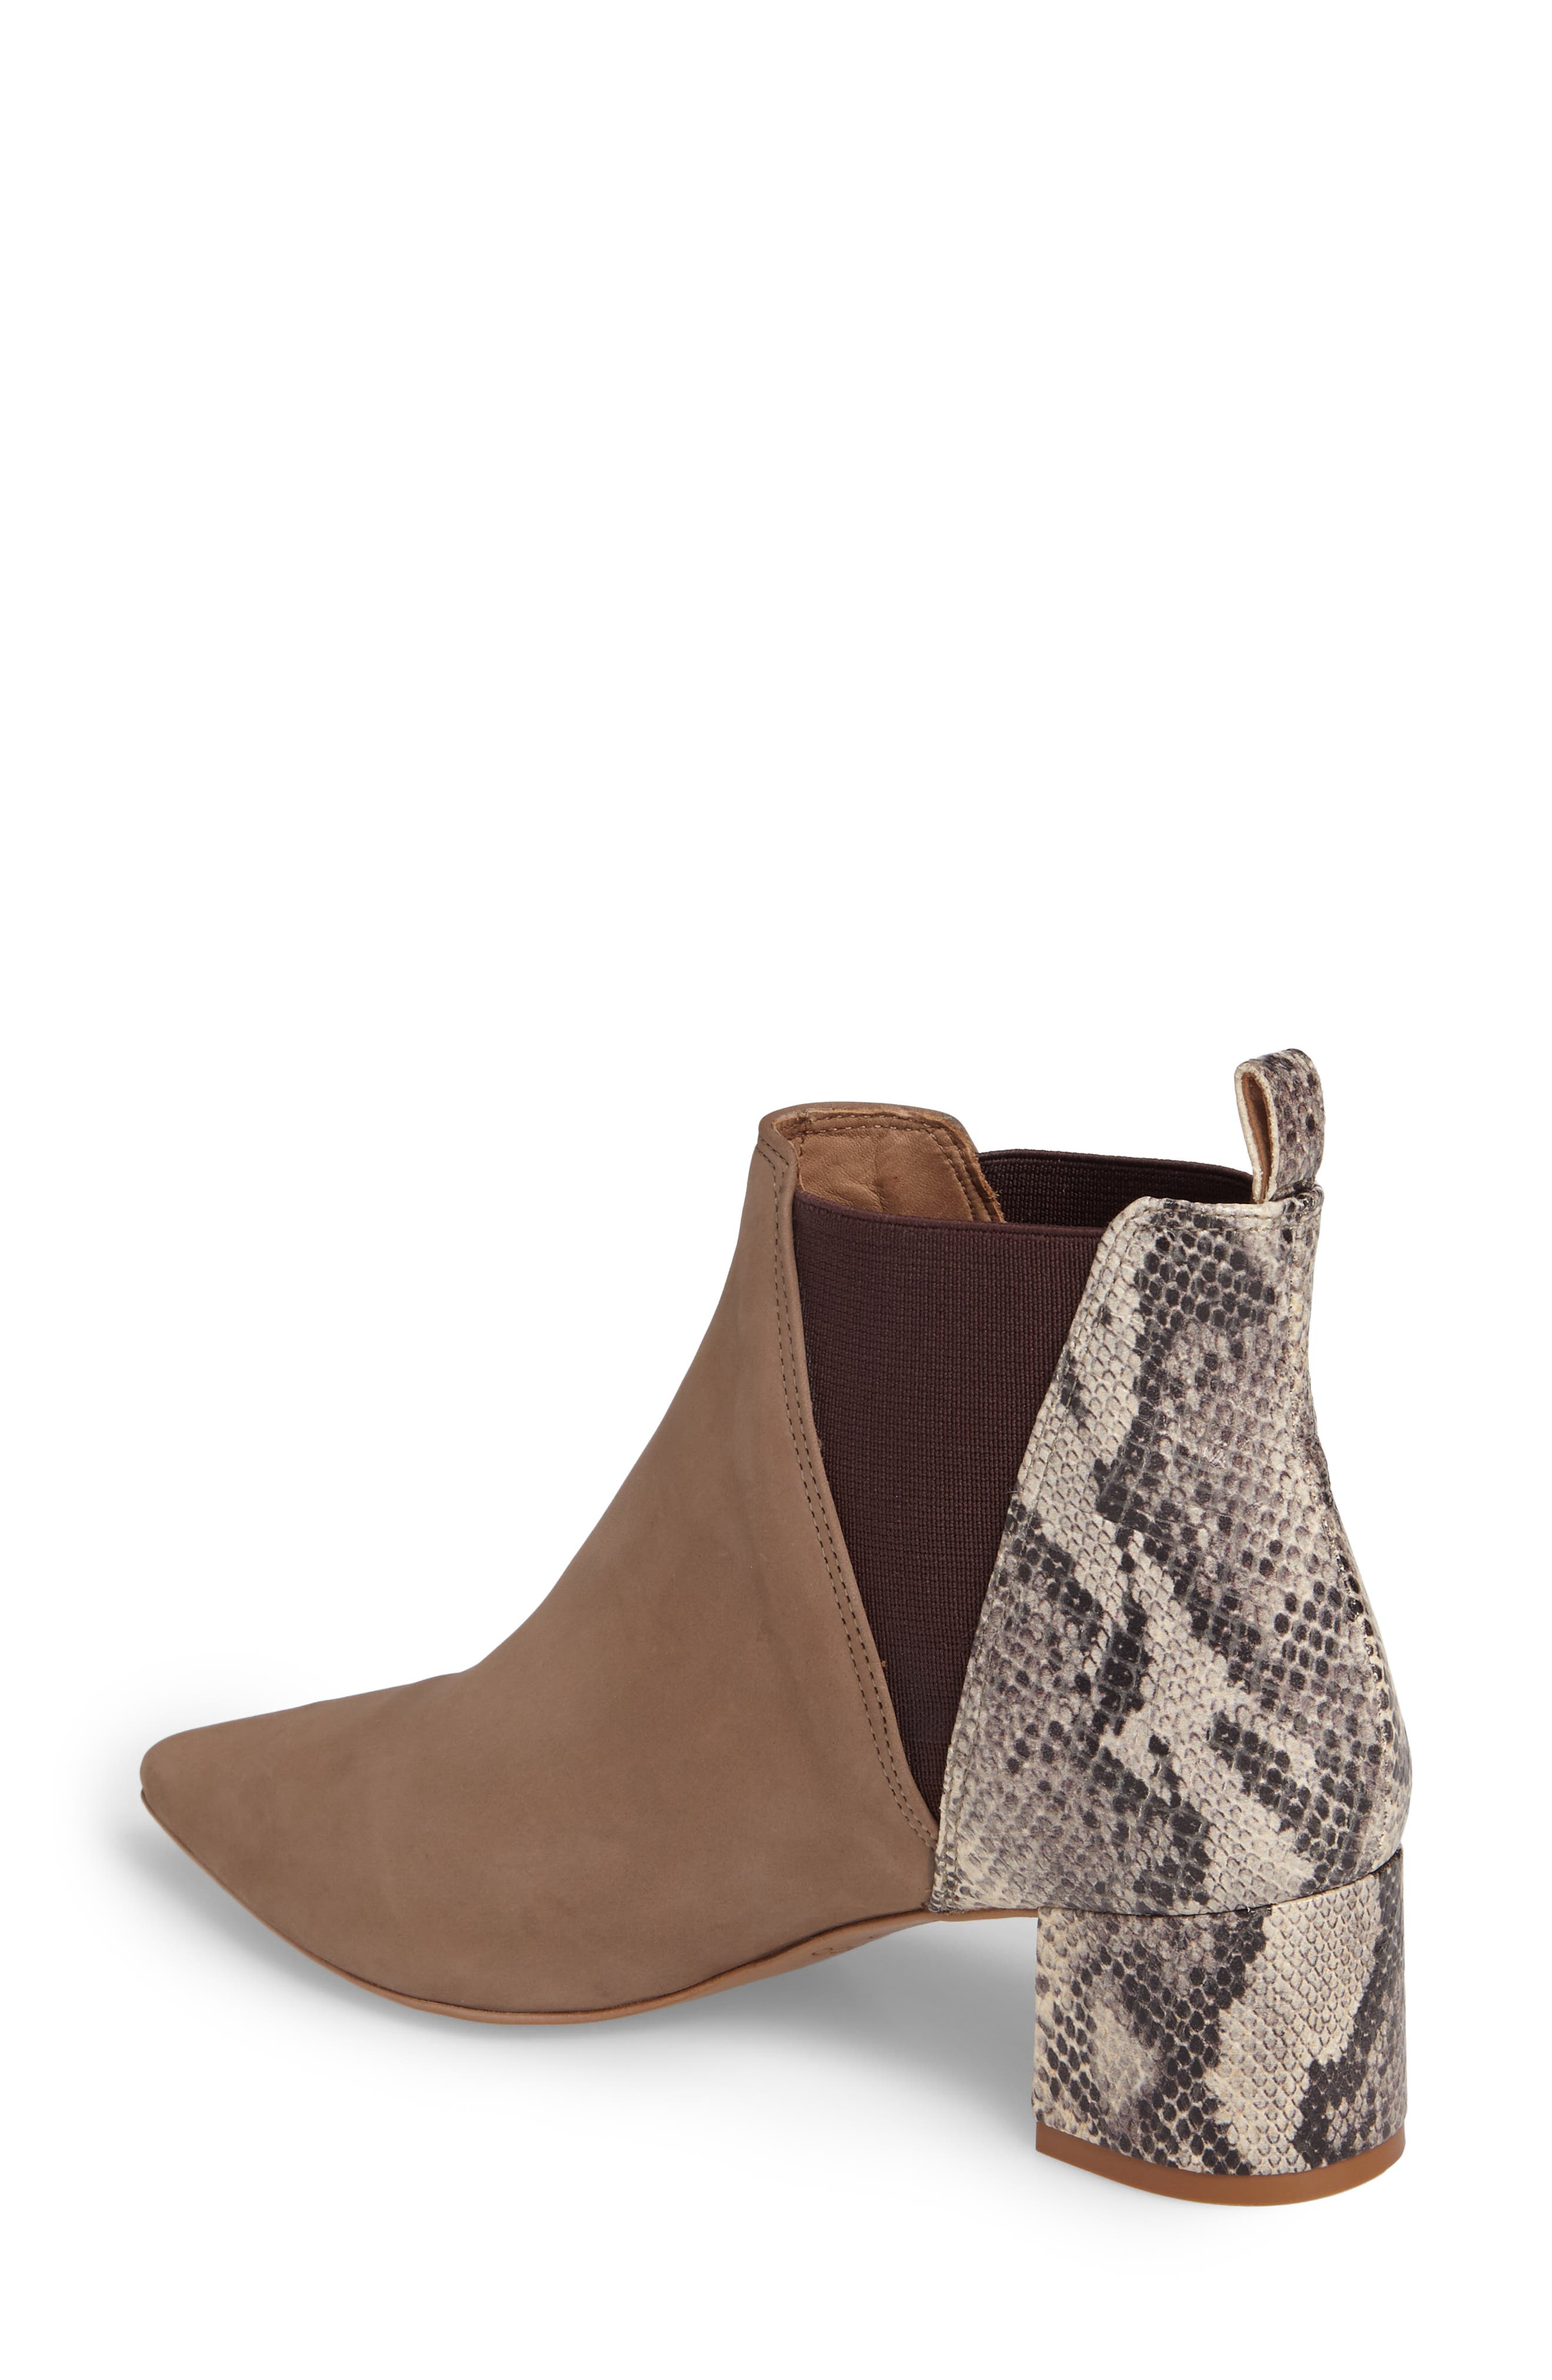 Renita Pointy Toe Chelsea Bootie,                             Alternate thumbnail 2, color,                             Taupe Snake Print Suede